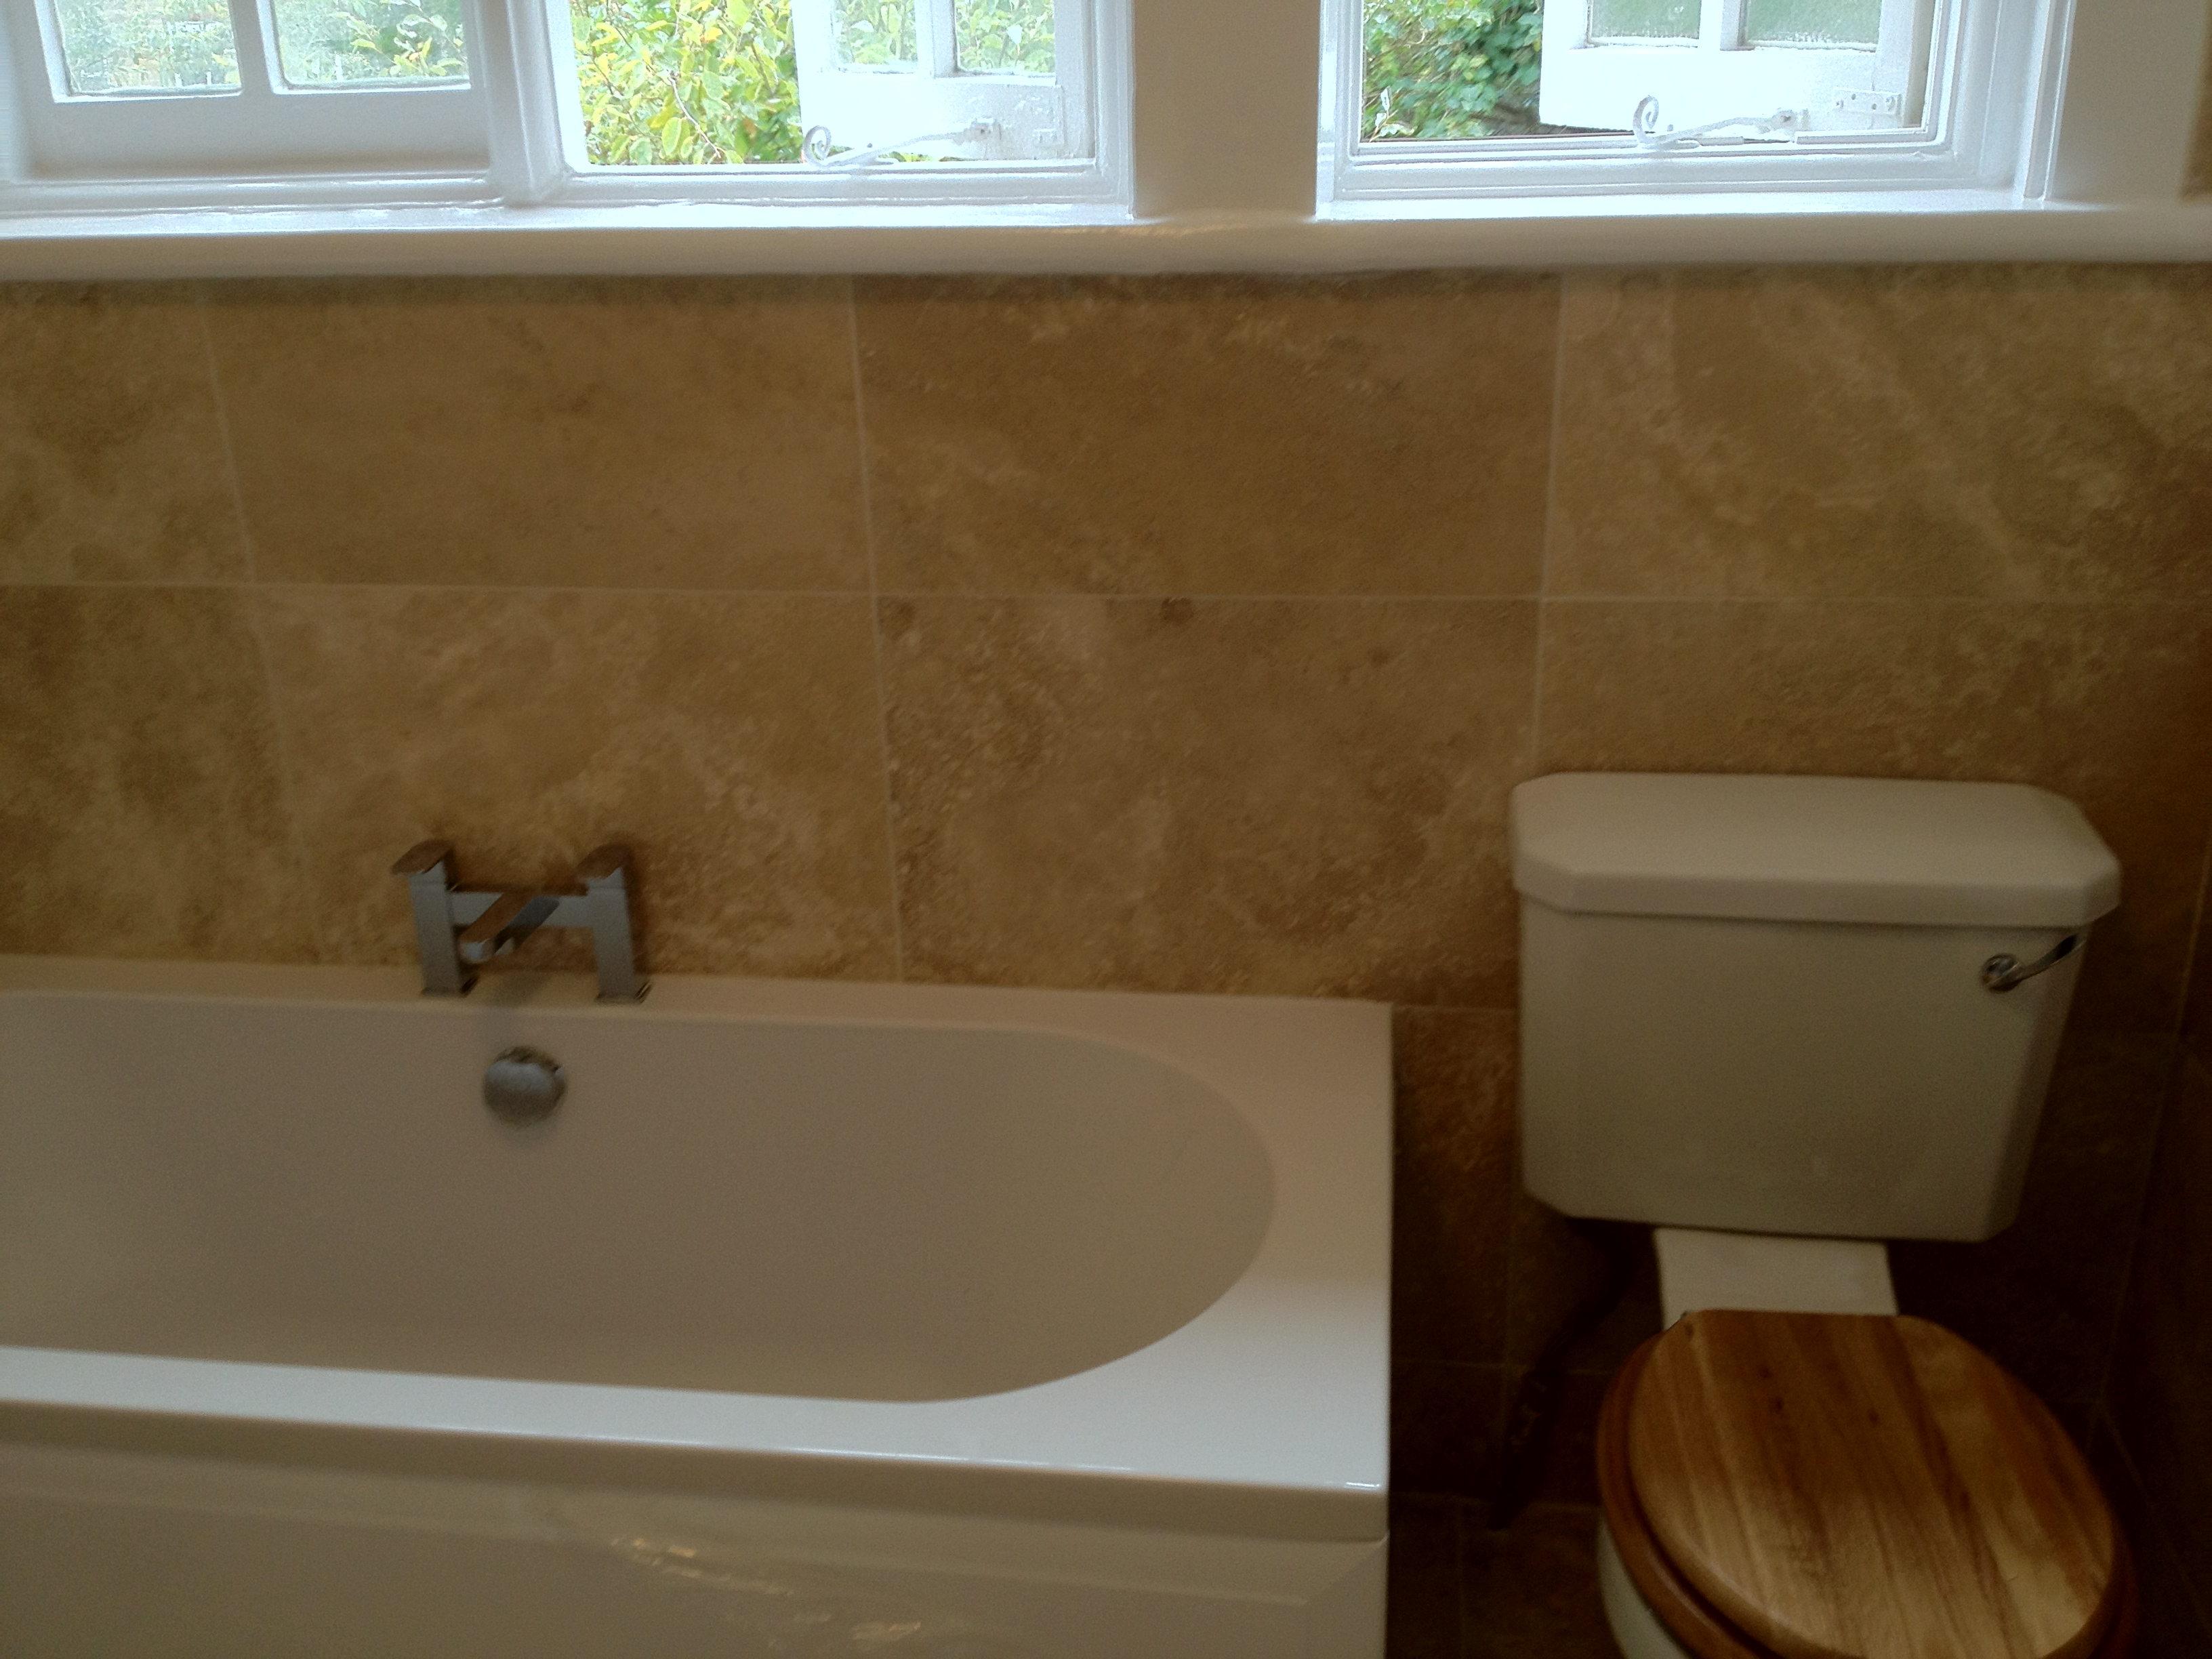 Installing new bath, North London